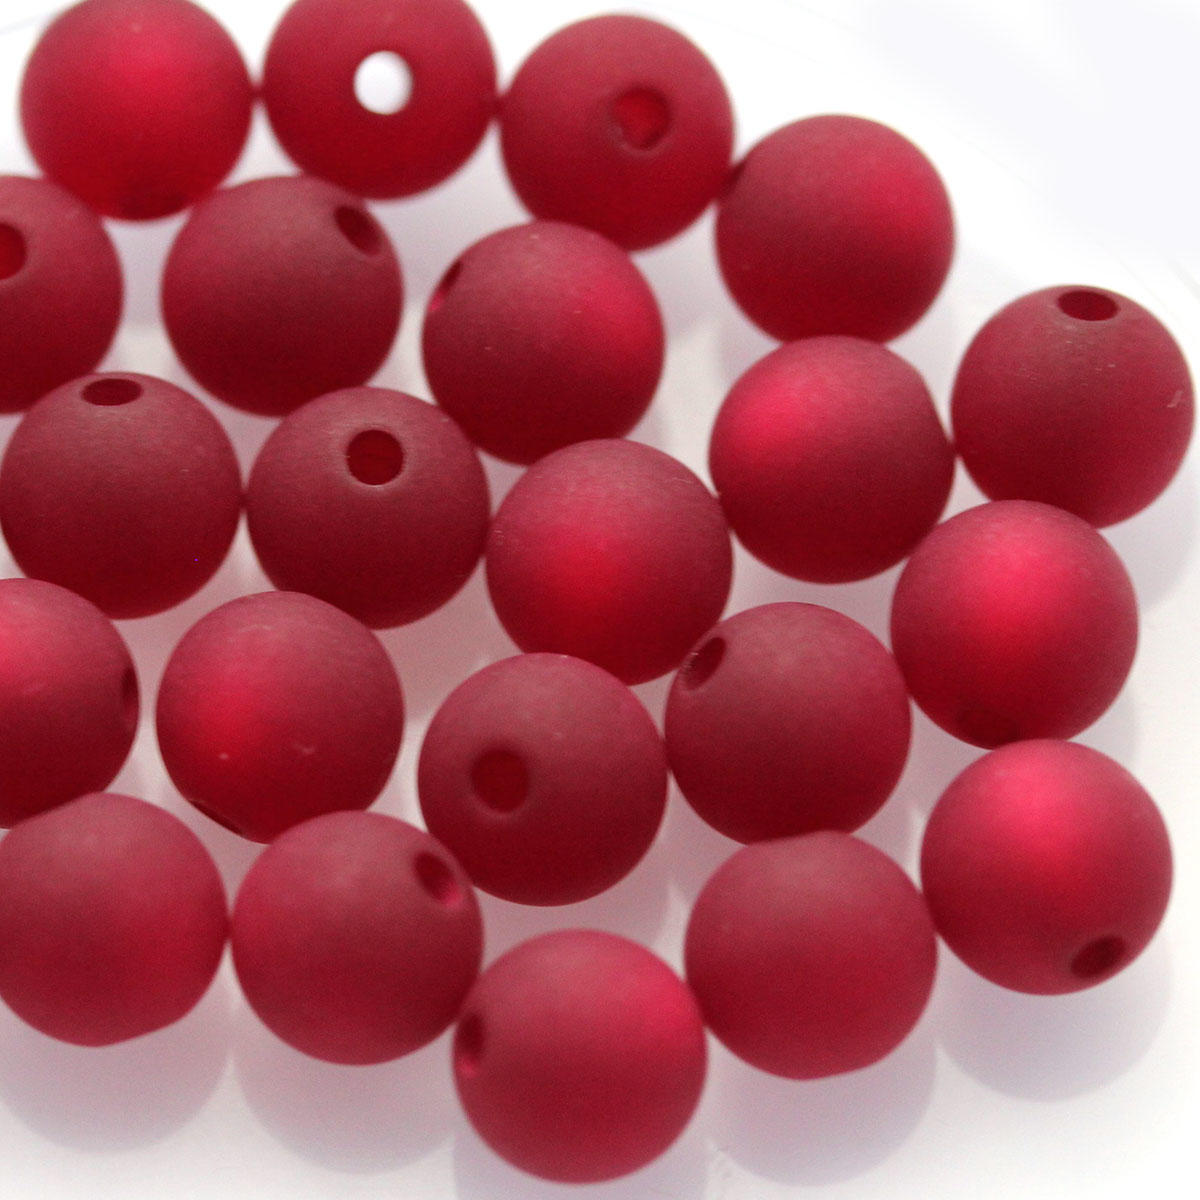 Cranberry 12mm Round Polaris Bead